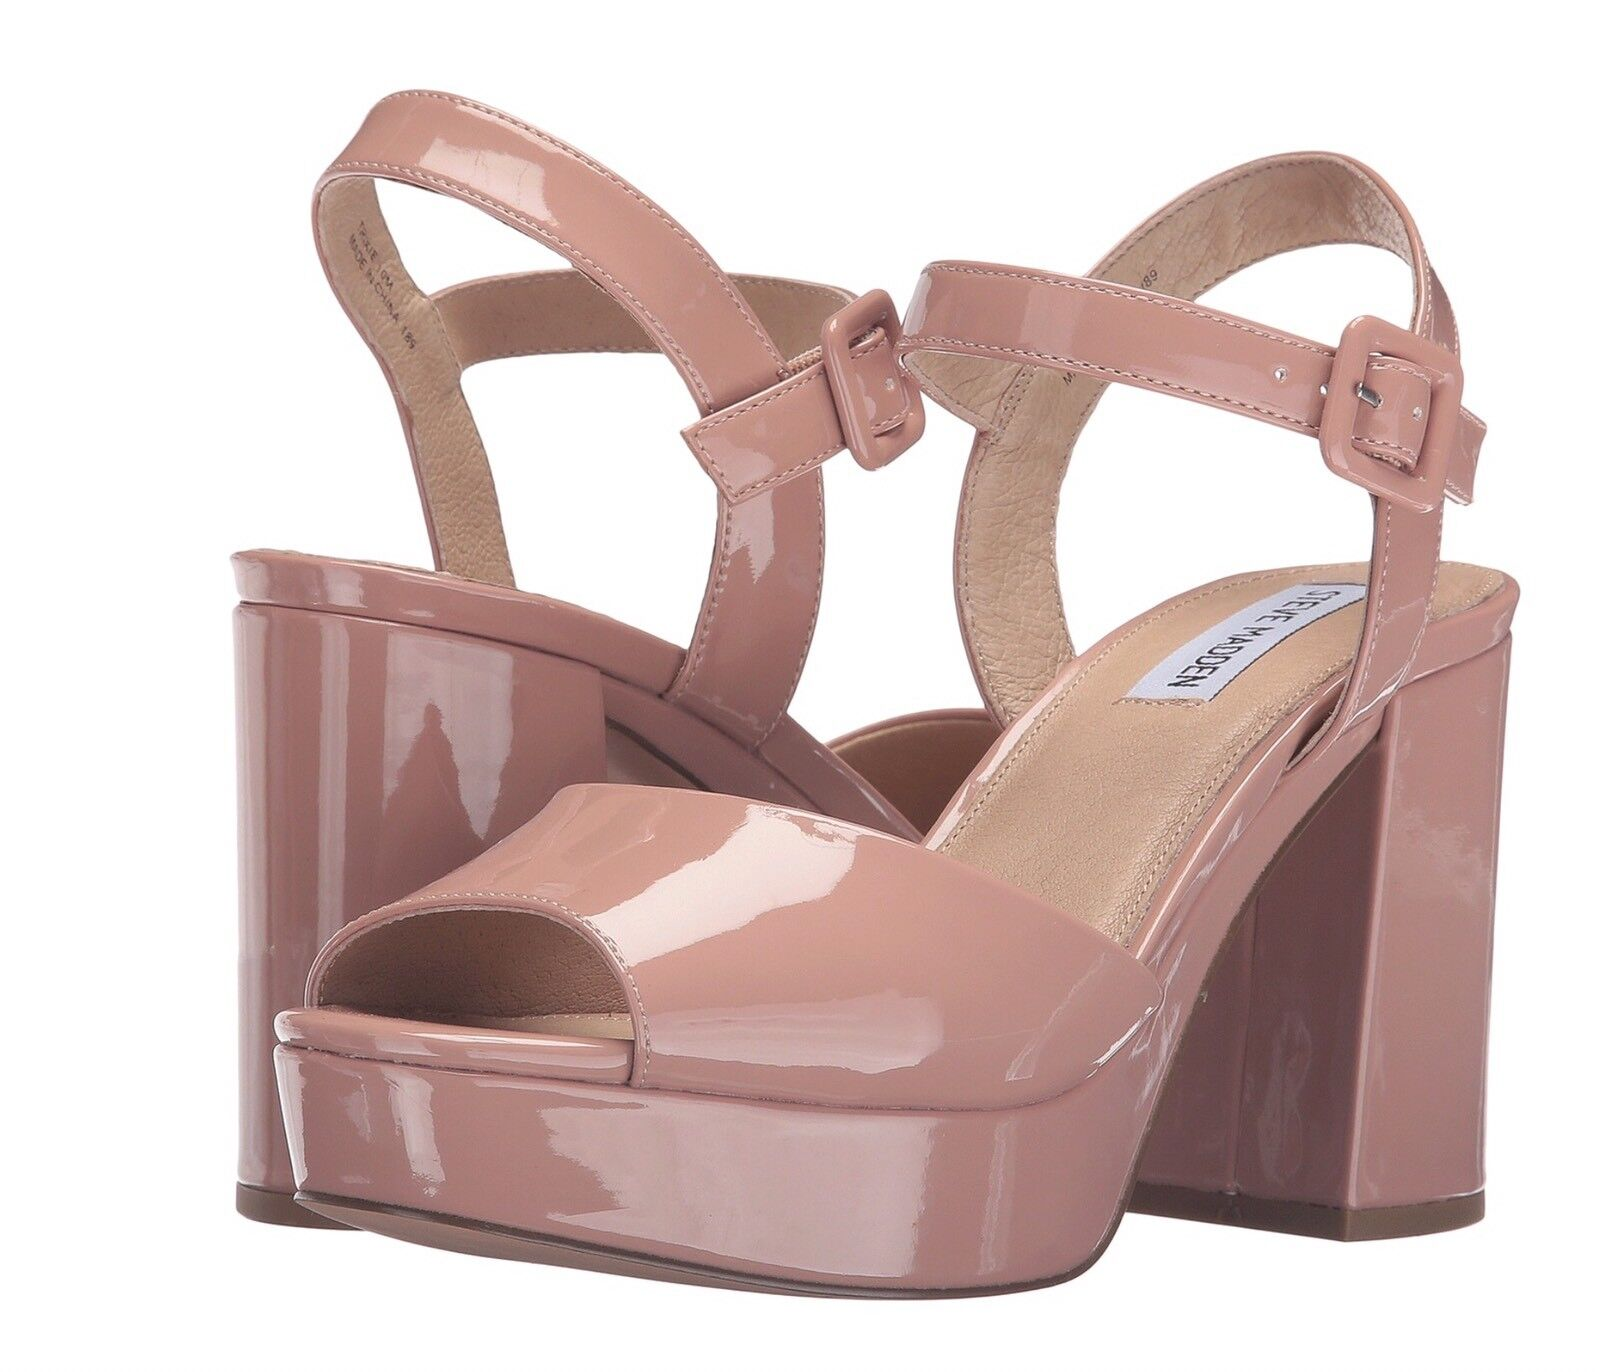 Steve Madden Trixie Sandal In Blush Pink, Sz 6.5, Party, Wedding or Prom